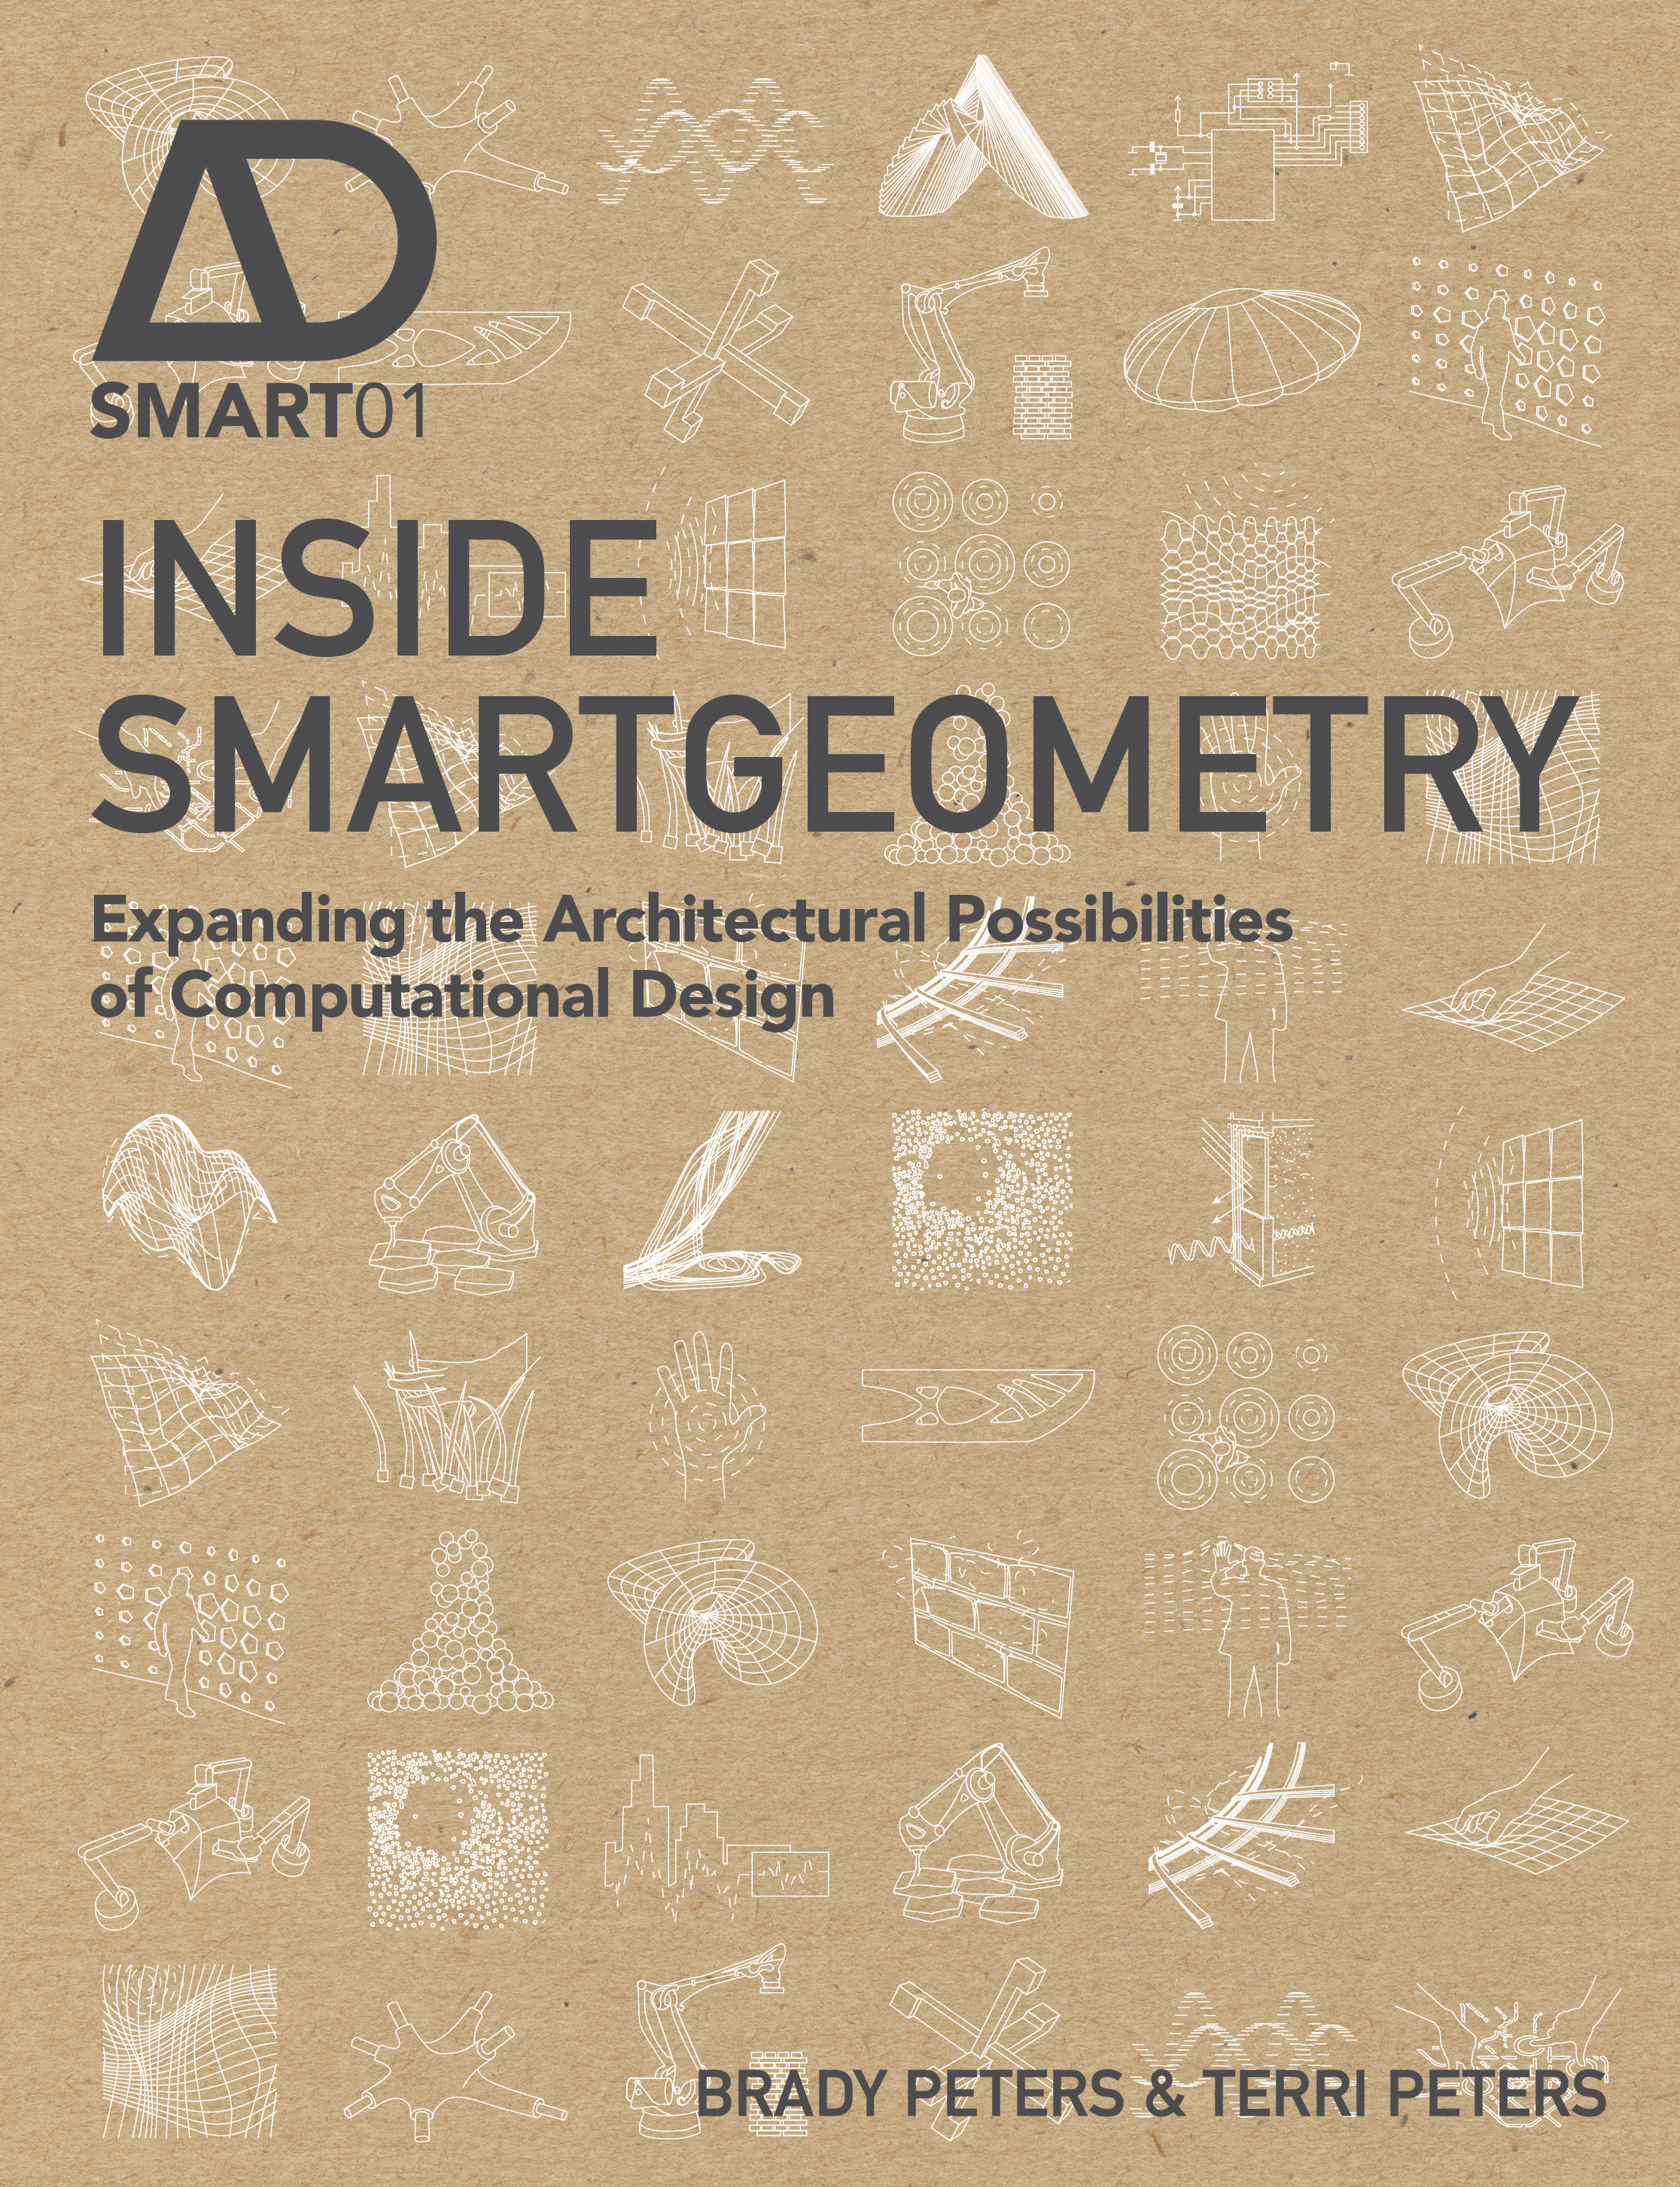 Inside Smartgeometry. Expanding the Architectural Possibilities of Computational Design